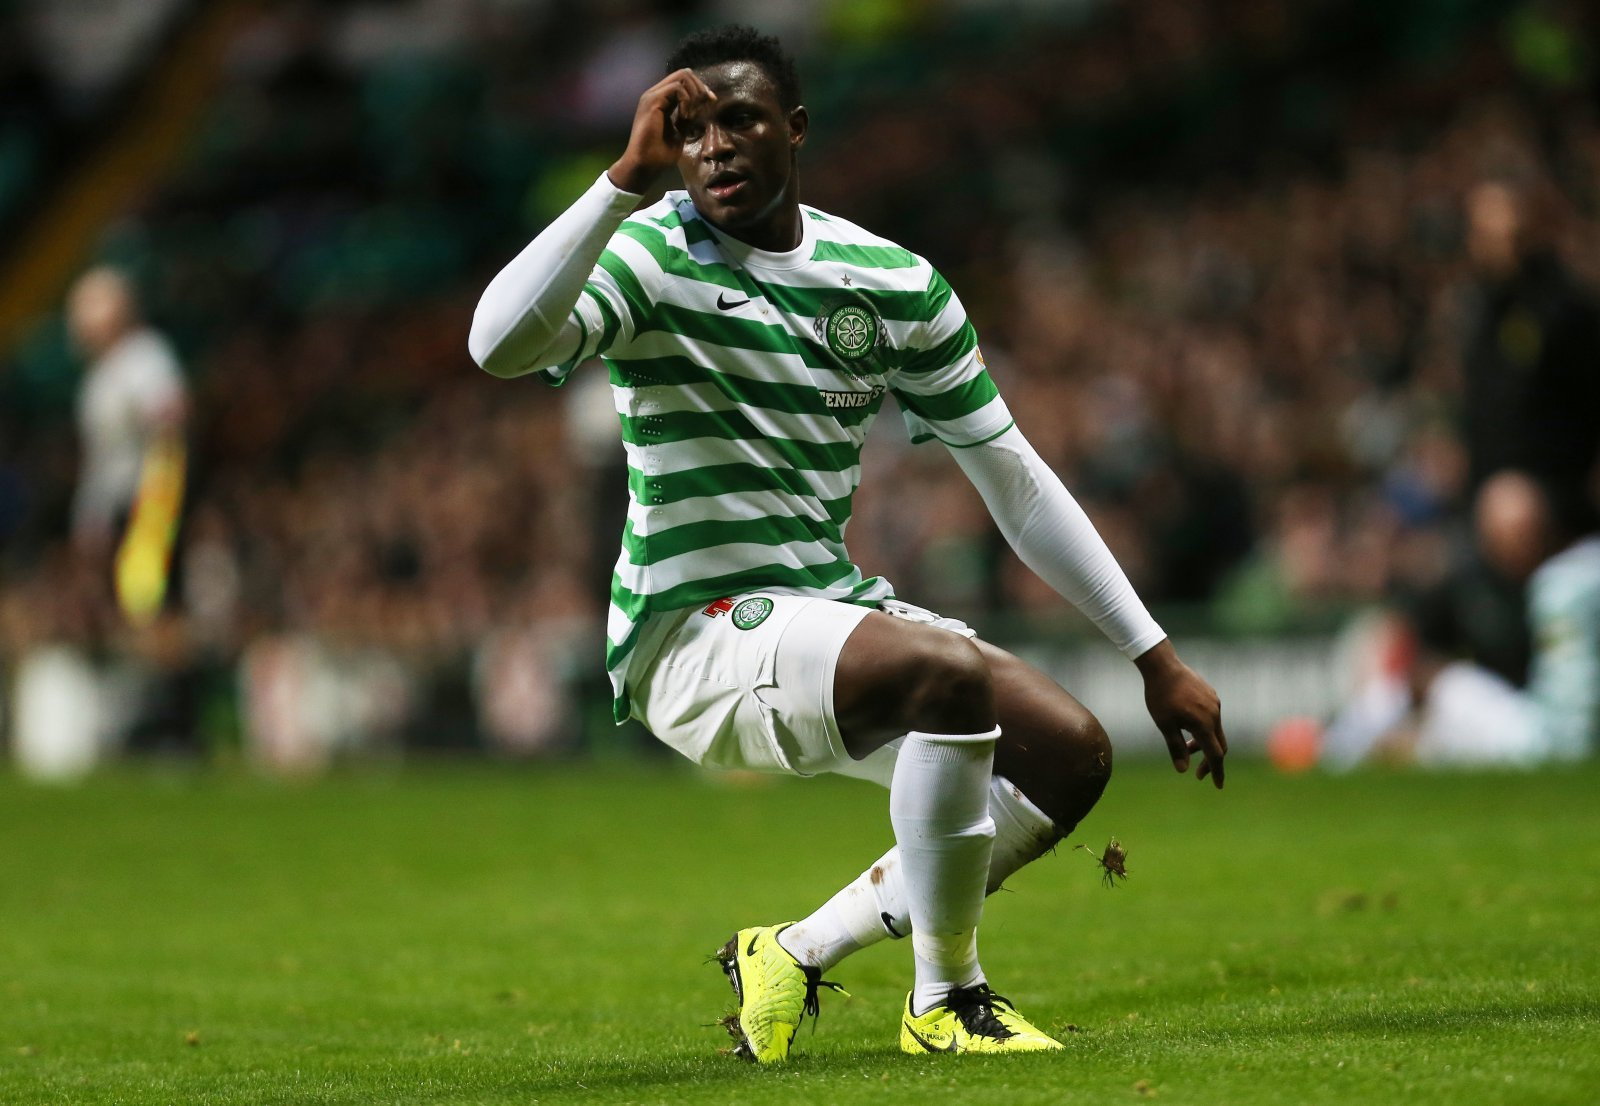 Celtic: Fans react to reports of potential return of Victor Wanyama